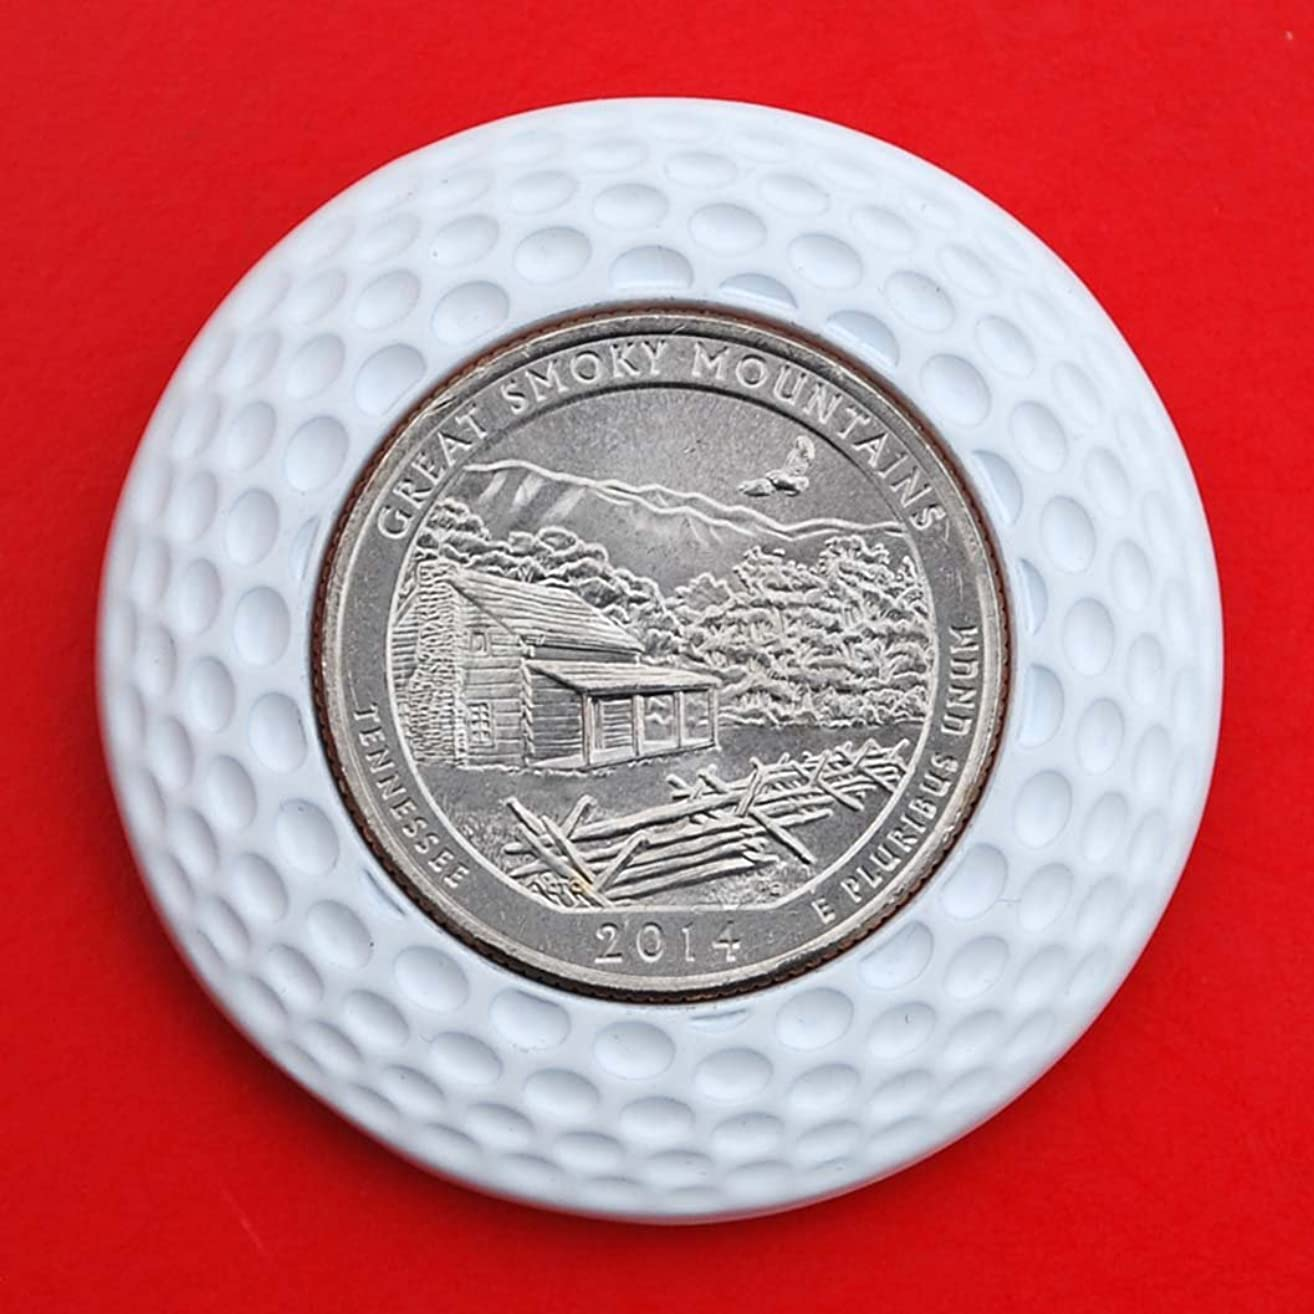 US 2014 Tennessee Great Smoky Mountains National Park Quarter BU Uncirculated Coin 3D Design 4 Leaf Clover Removable Golf Ball Marker Magnetic Poker Chip - America the Beautiful